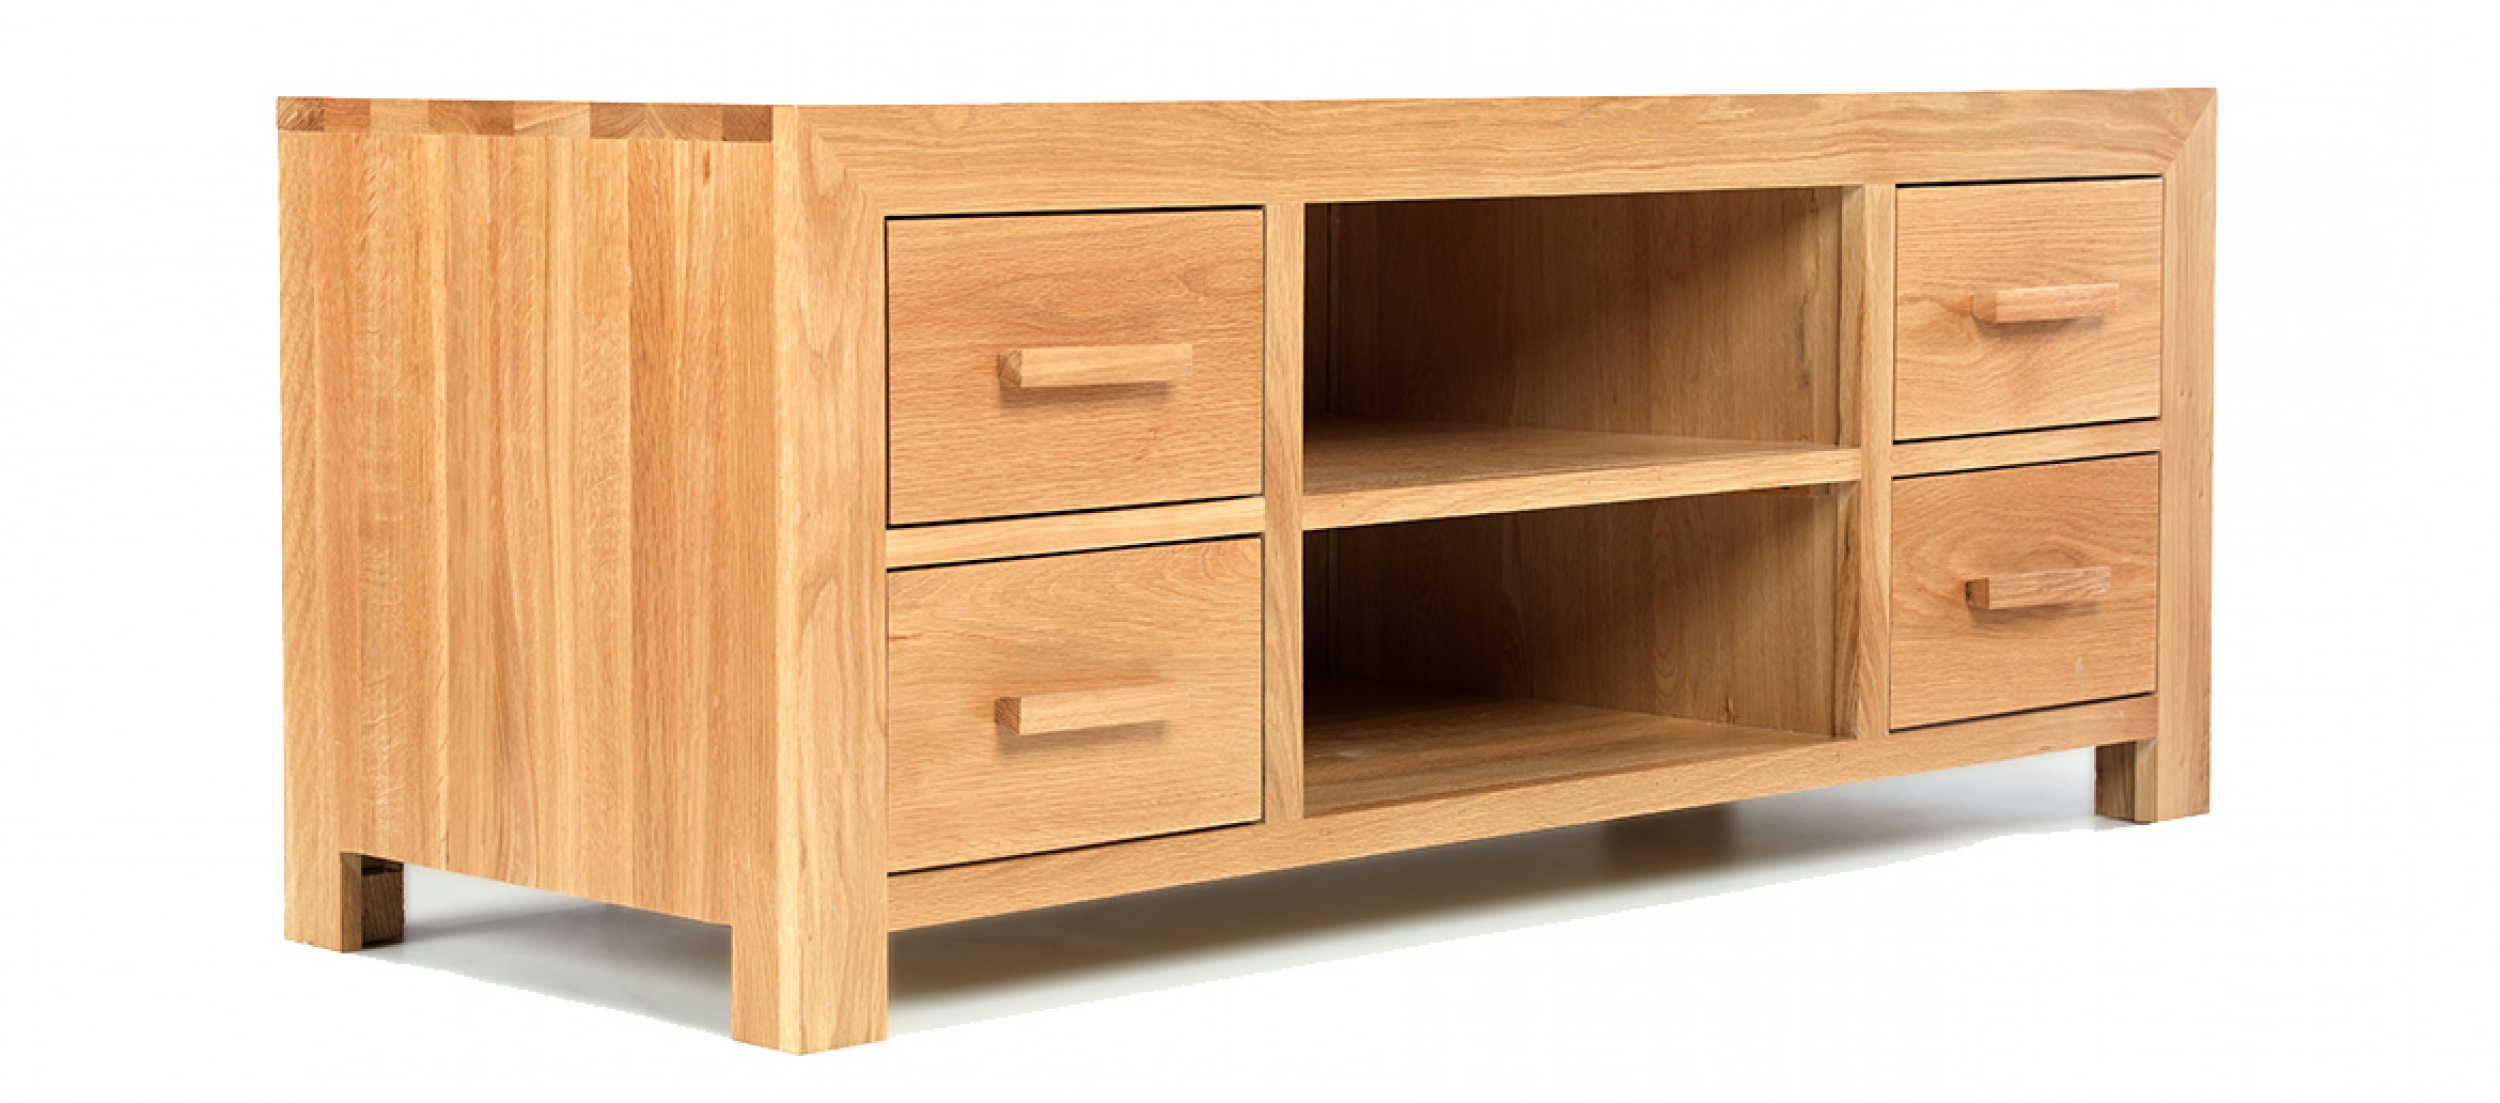 Cube Oak Plasma Tv Stand (View 4 of 20)